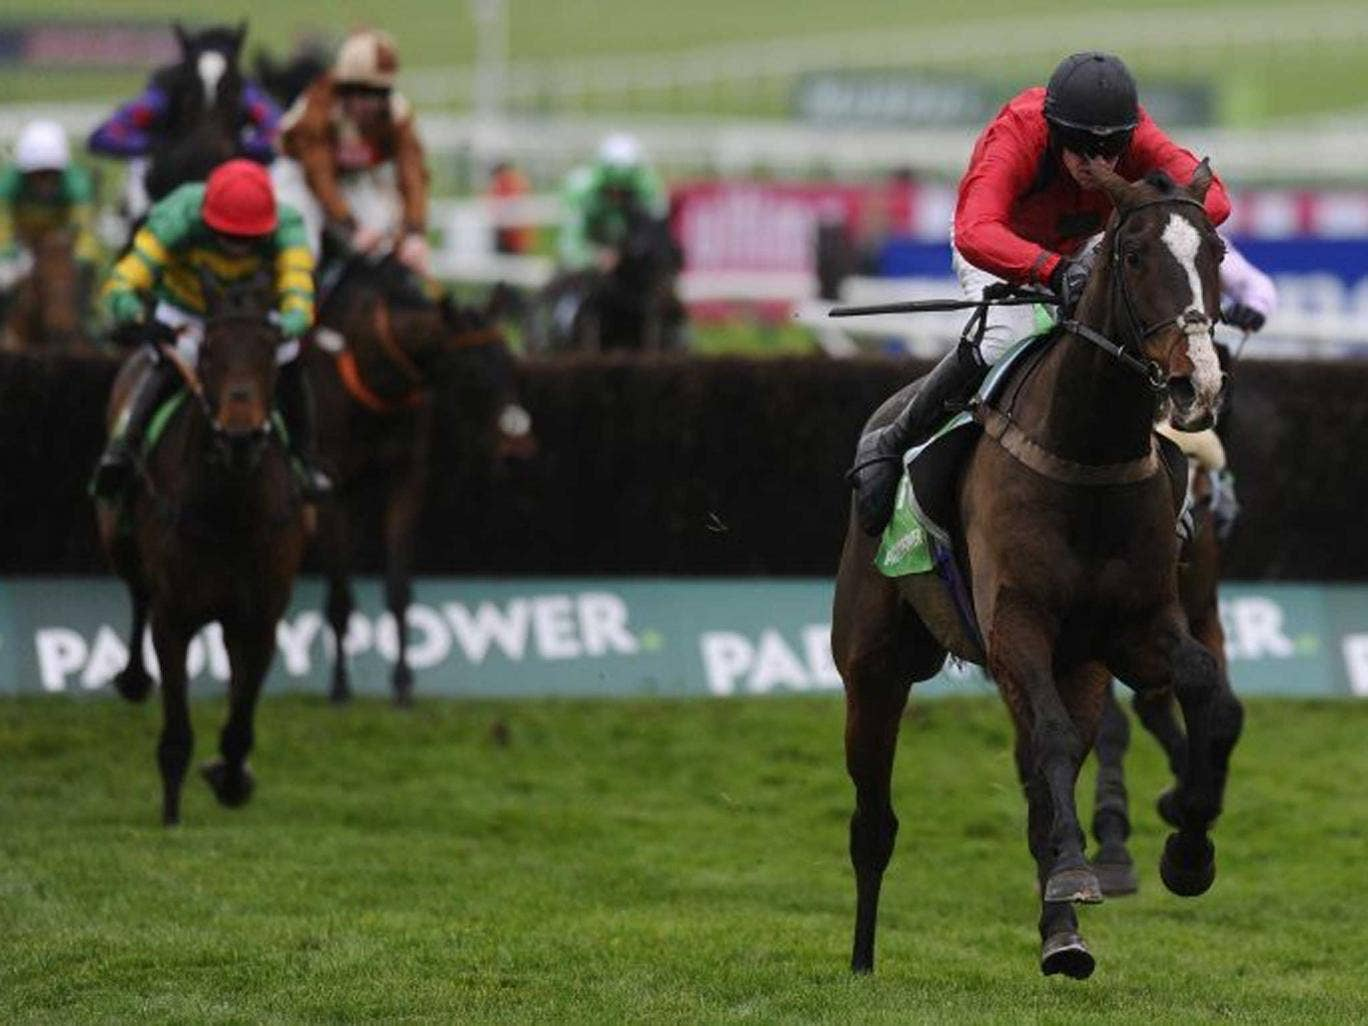 Fast forward: St Johns Spirit heads for victory in the Paddy Power Chase